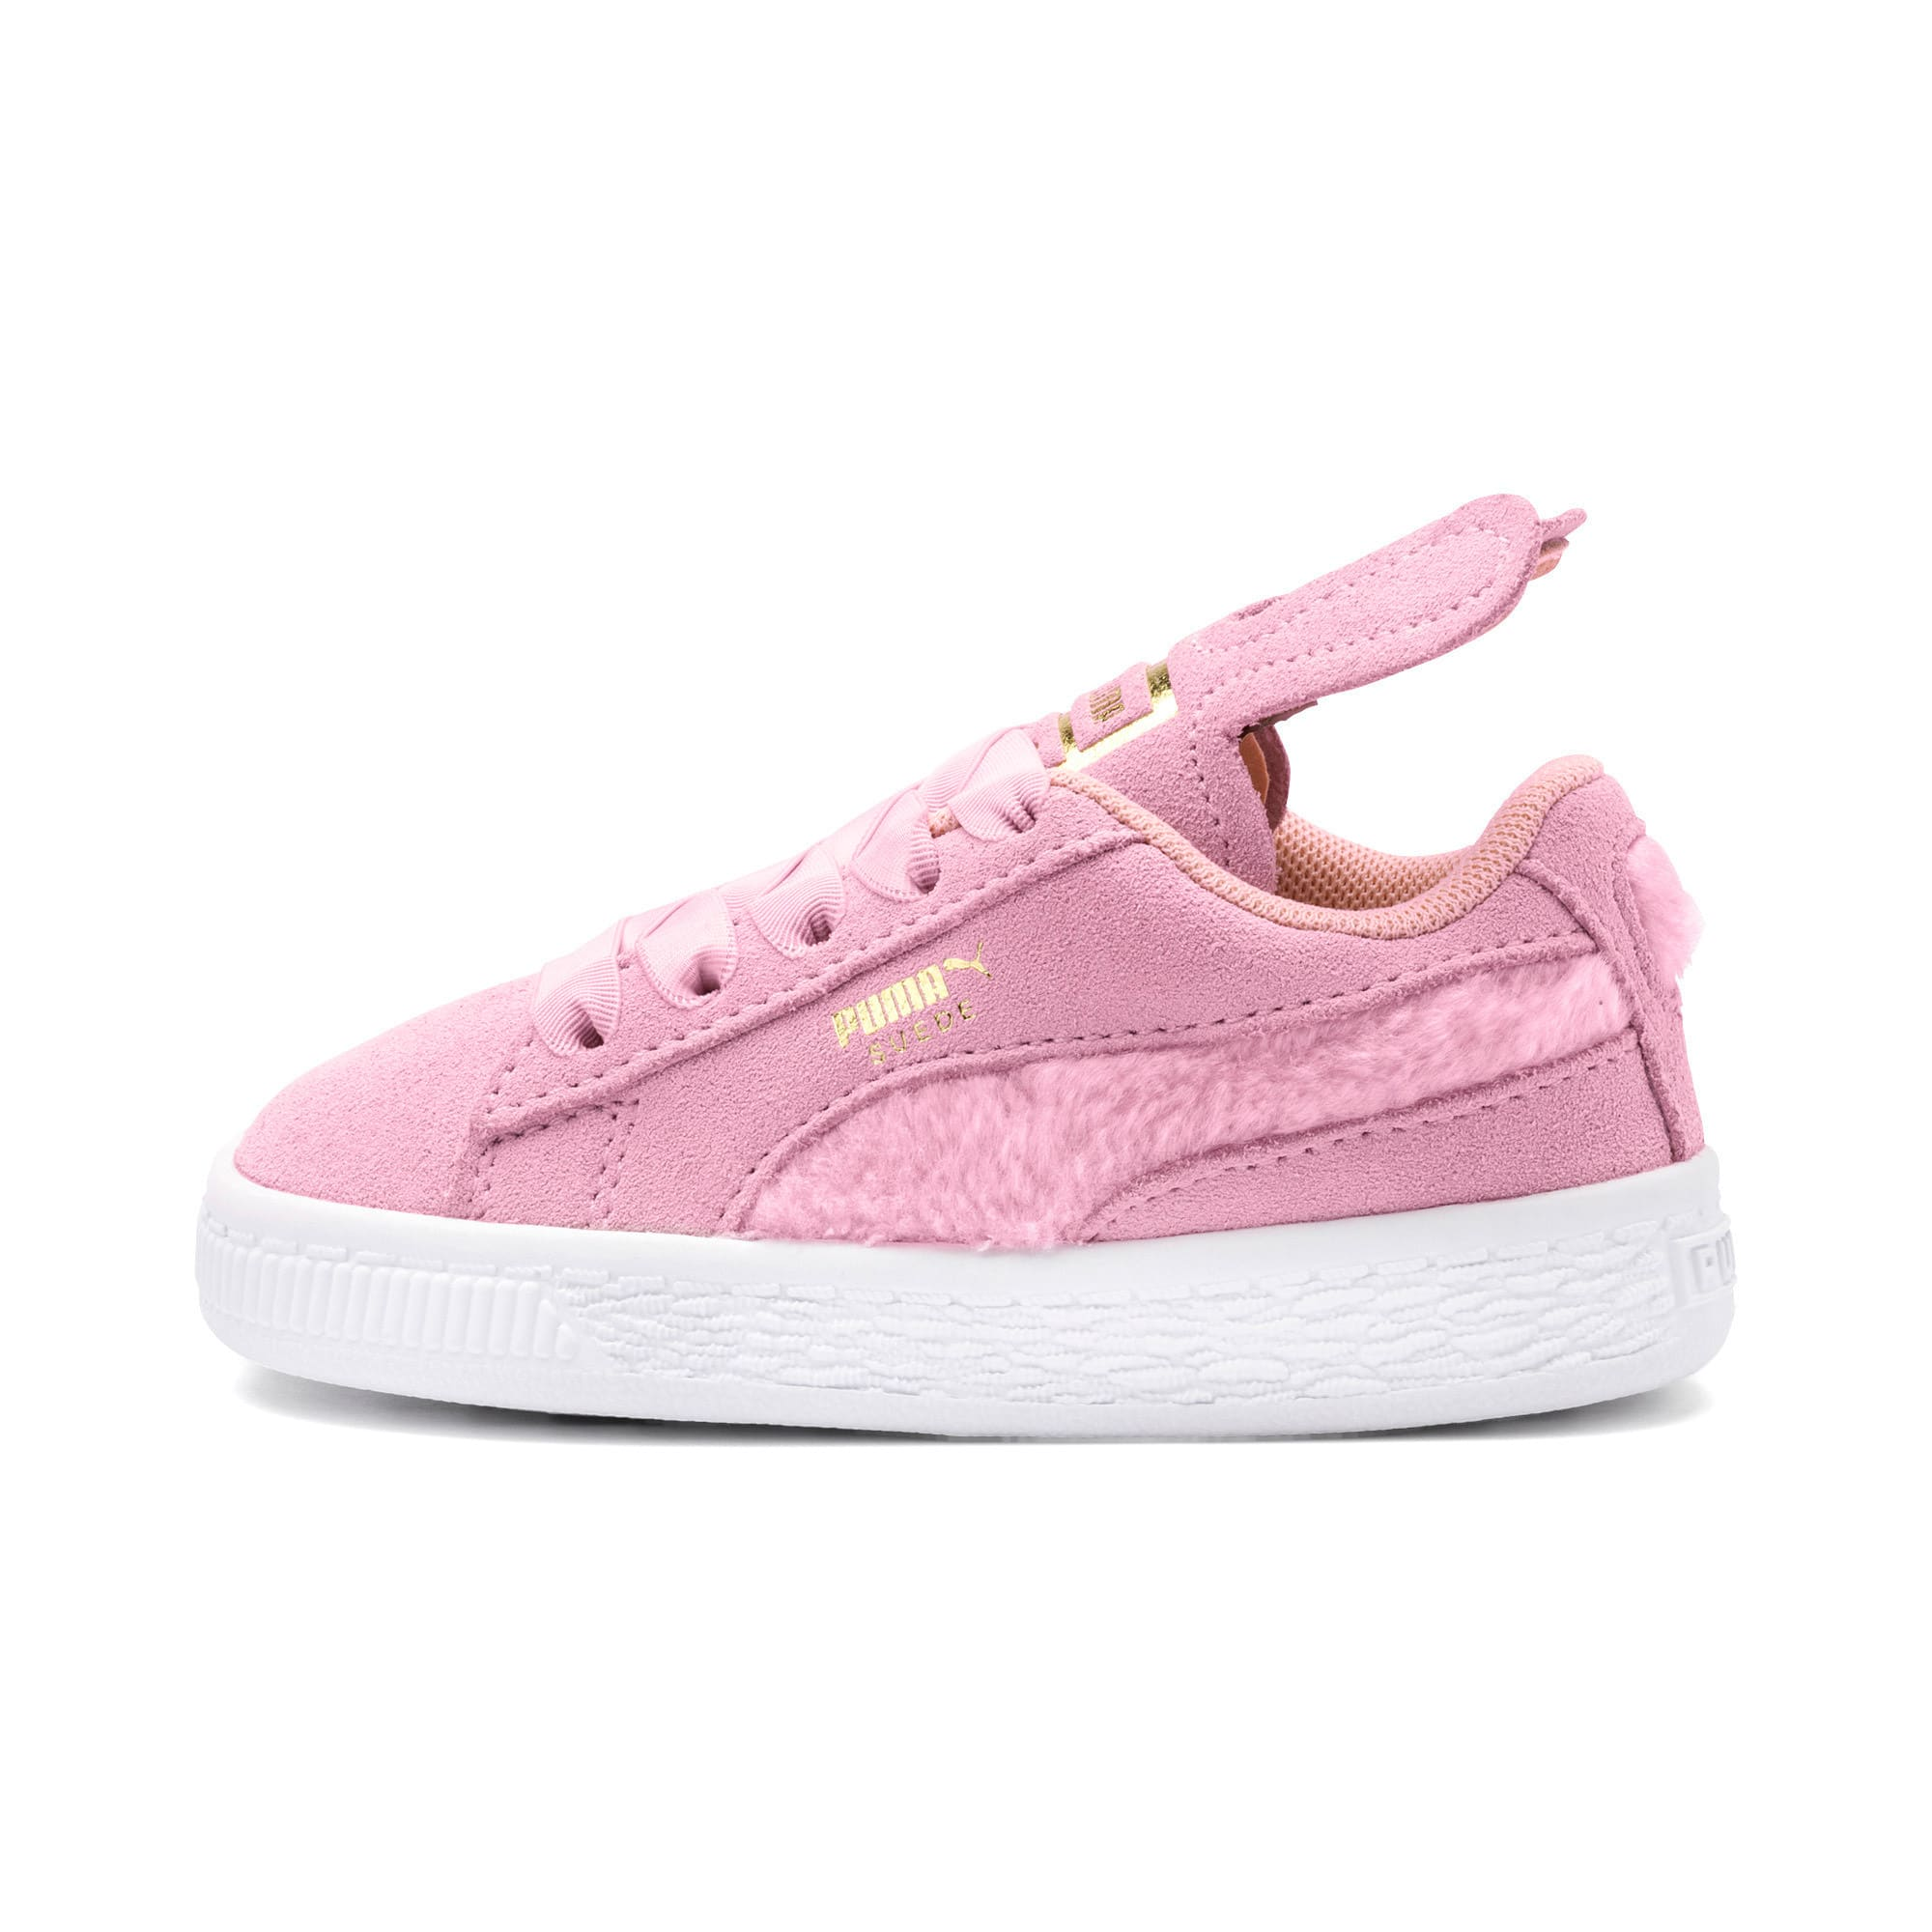 Thumbnail 1 of Suede Easter Kids' Trainers, Pale Pink-Coral Cloud, medium